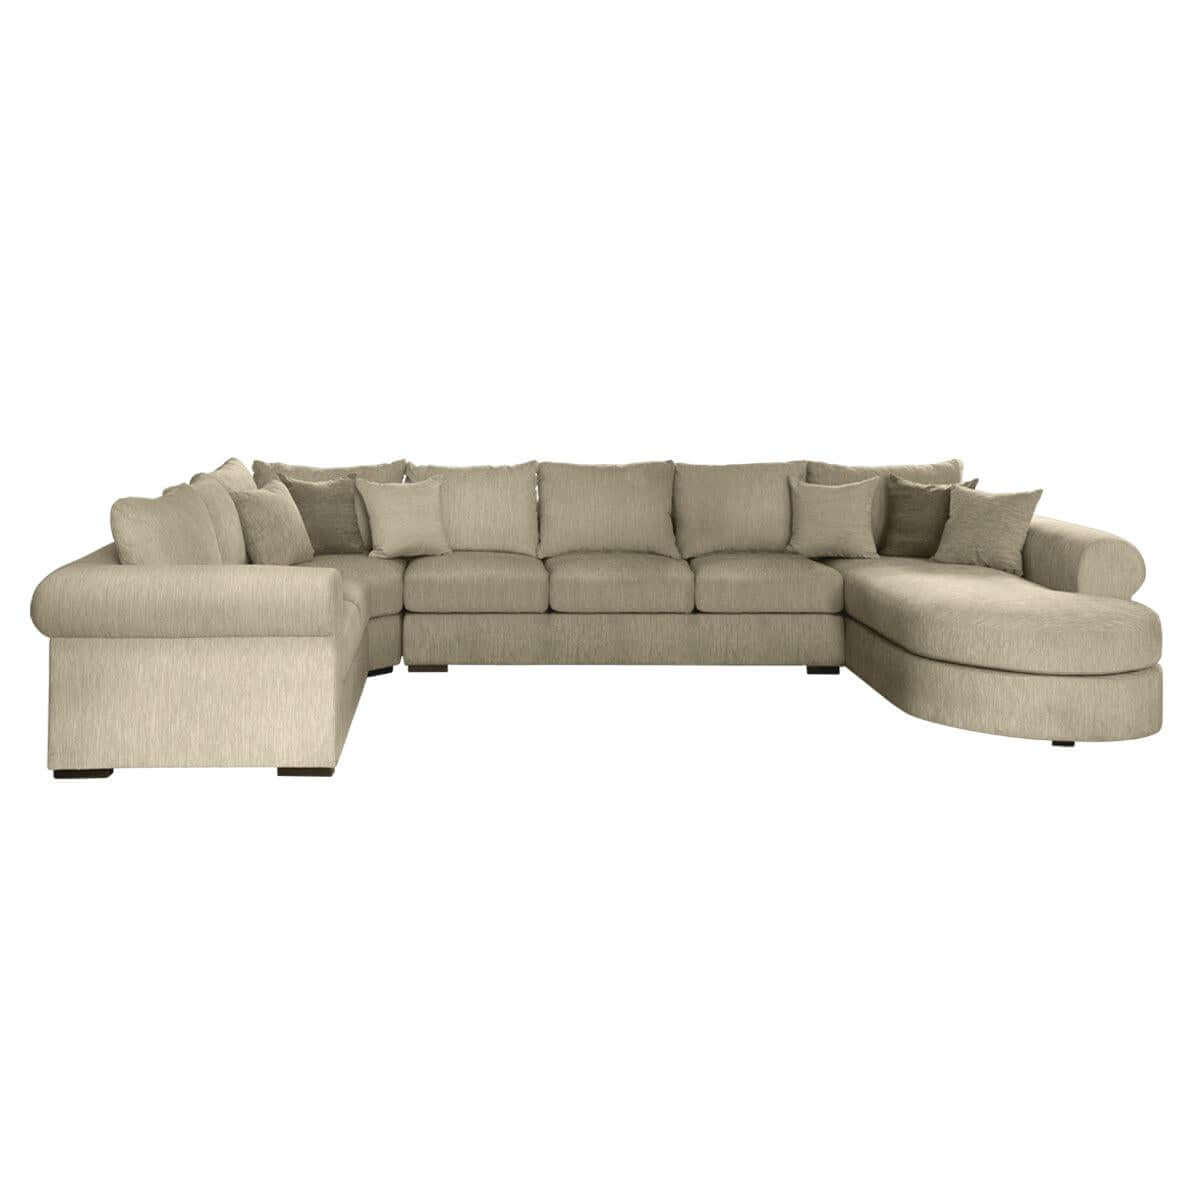 Tuscany Sectional Sofa